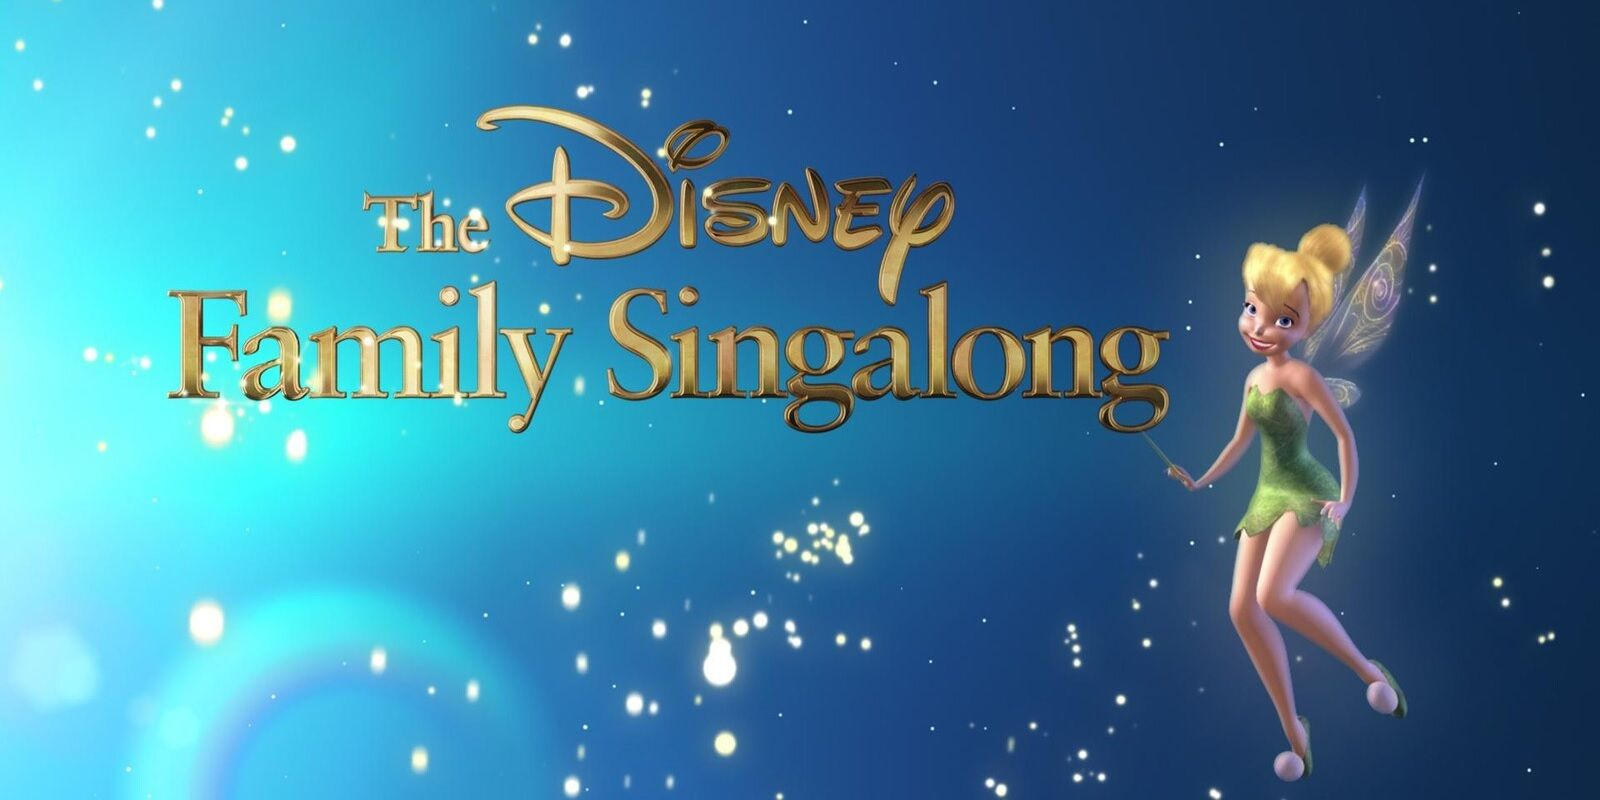 Don't Miss The Disney Family Singalong on ABC This Monday! - MickeyBlog.com